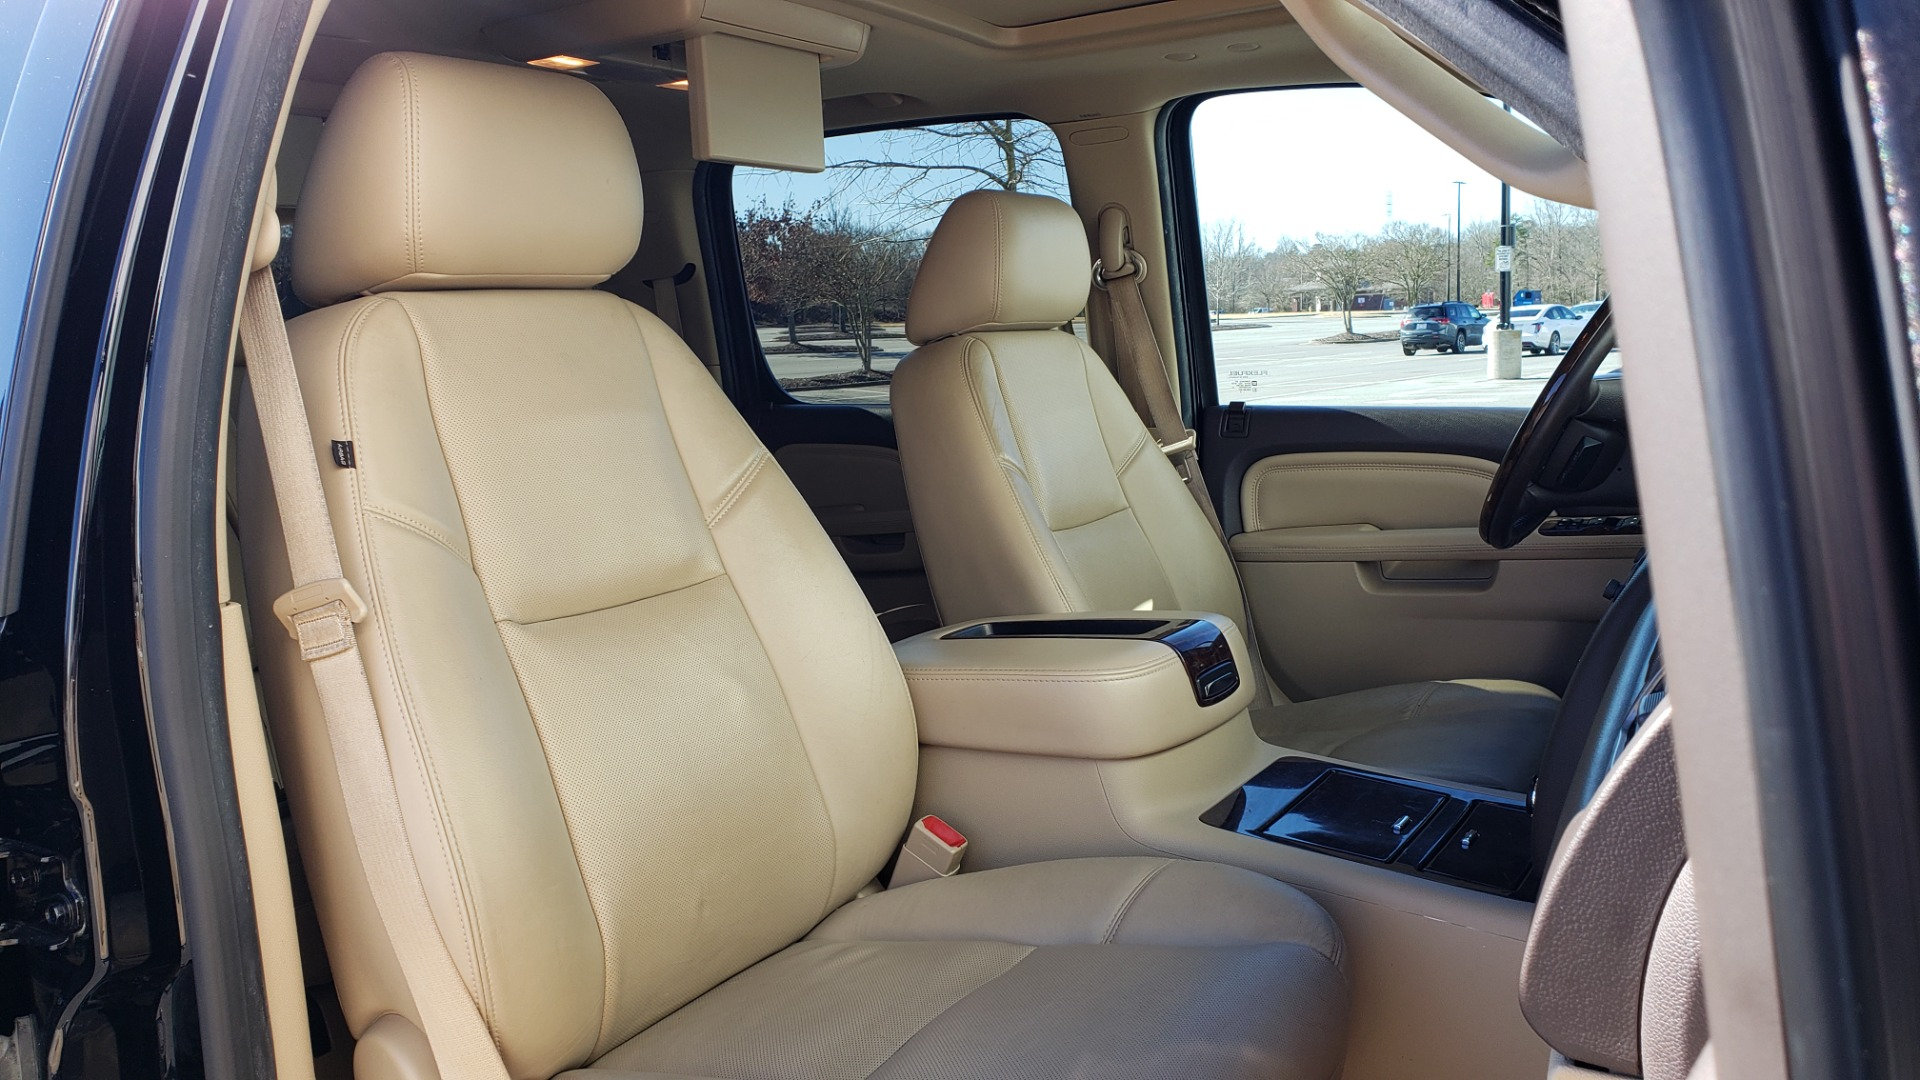 Used 2013 GMC YUKON XL DENALI / AWD / NAV / SUNROOF / 3-ROW / ENTERTAINMENT for sale Sold at Formula Imports in Charlotte NC 28227 66